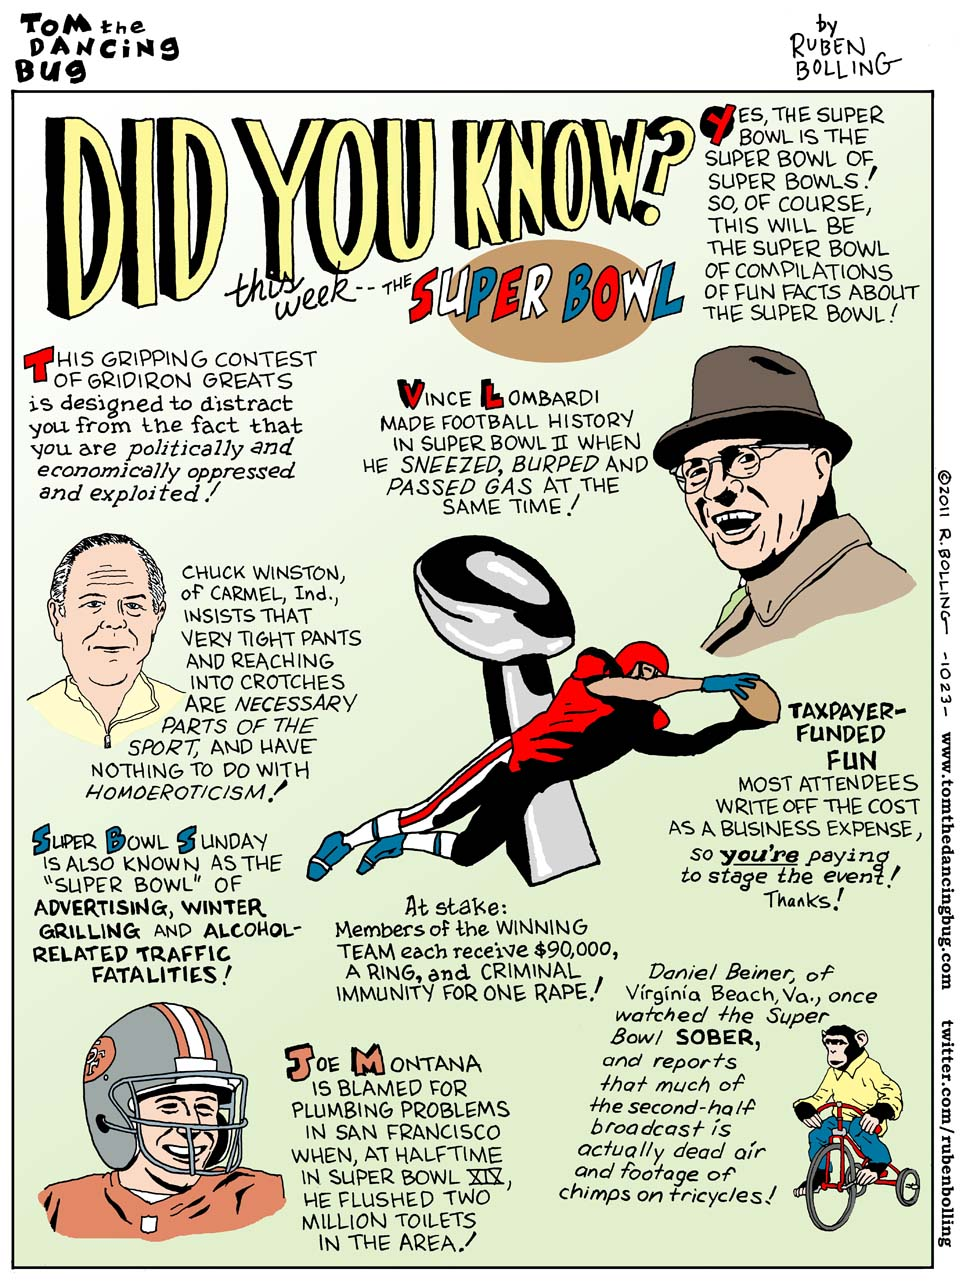 Fun Facts About the Super Bowl! / Boing Boing